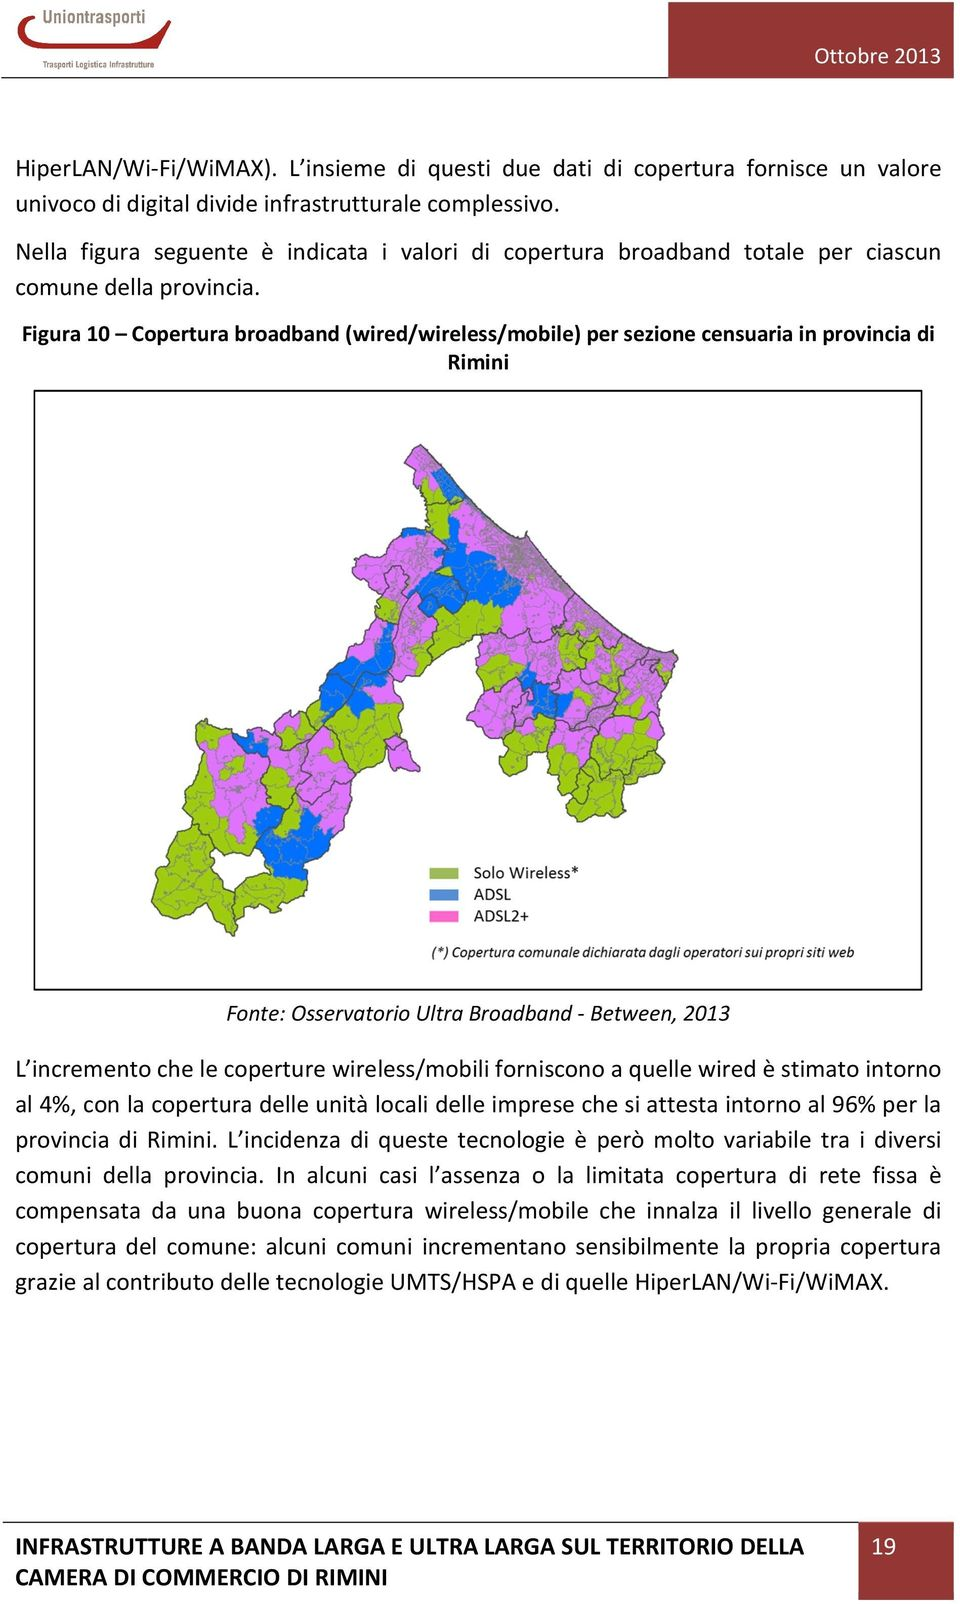 Figura 10 Copertura broadband (wired/wireless/mobile) per sezione censuaria in provincia di Rimini Fonte: Osservatorio Ultra Broadband - Between, 2013 L incremento che le coperture wireless/mobili